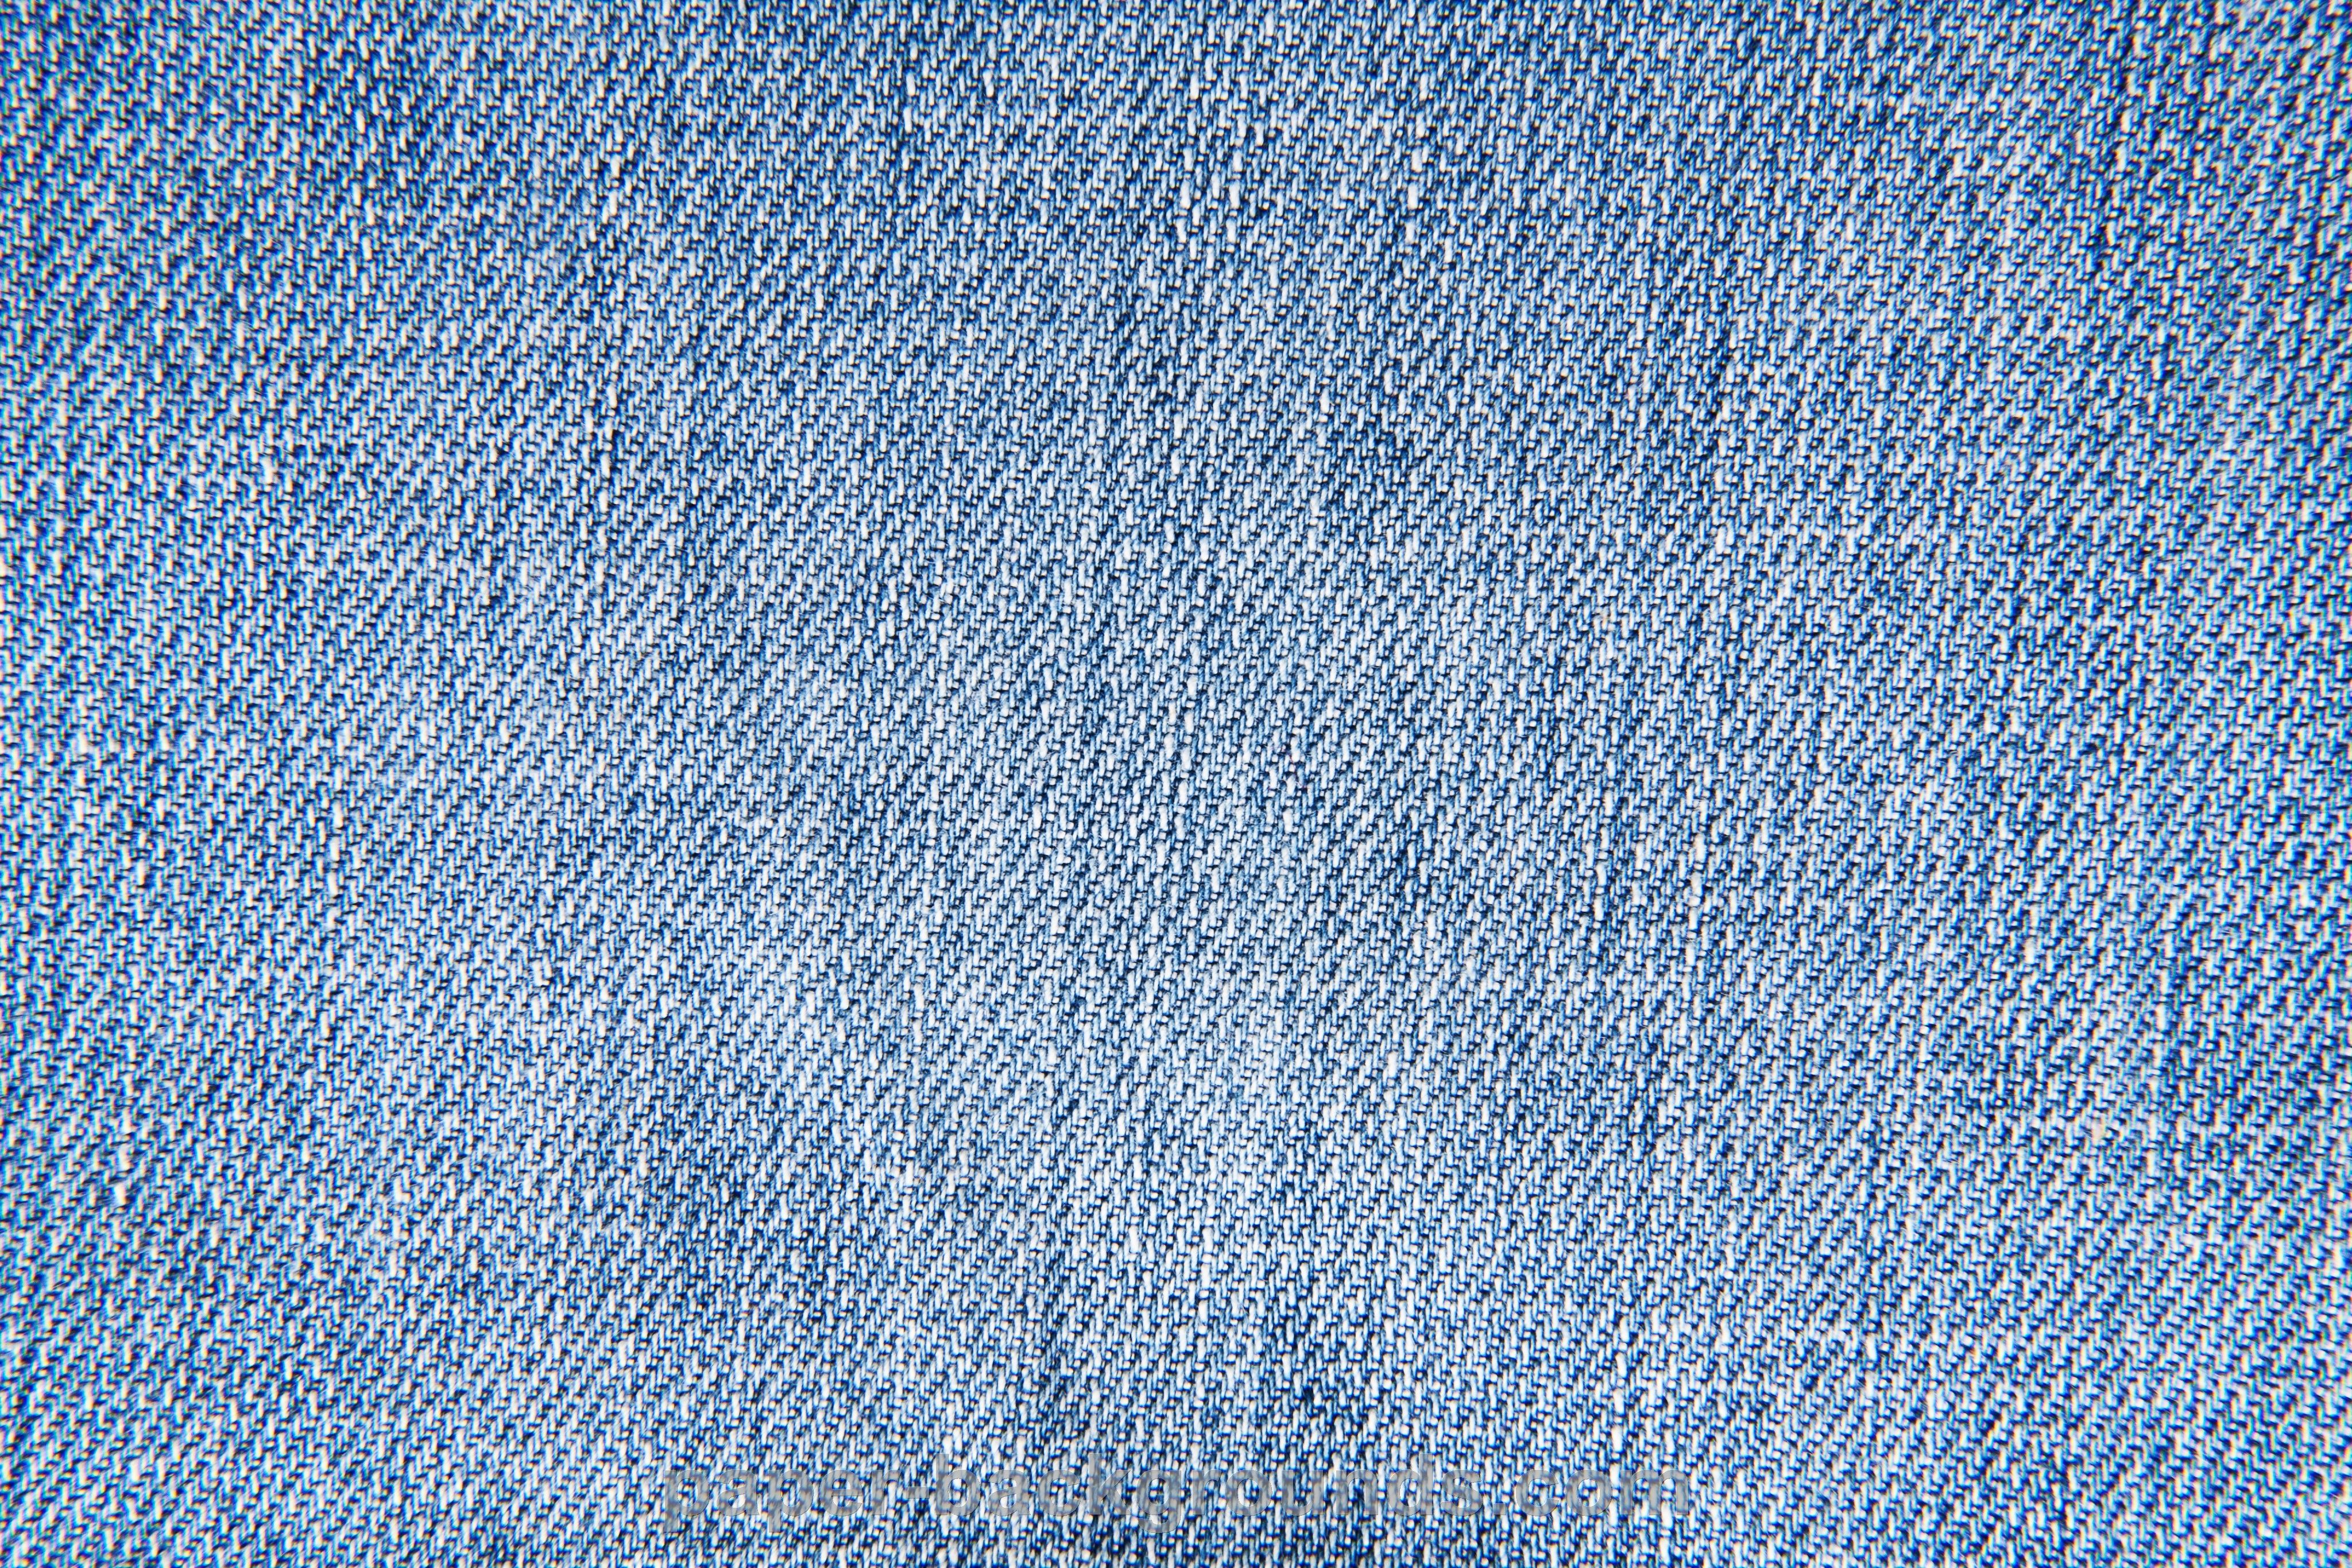 Blue Jeans Fabric Texture Background 4096x2731